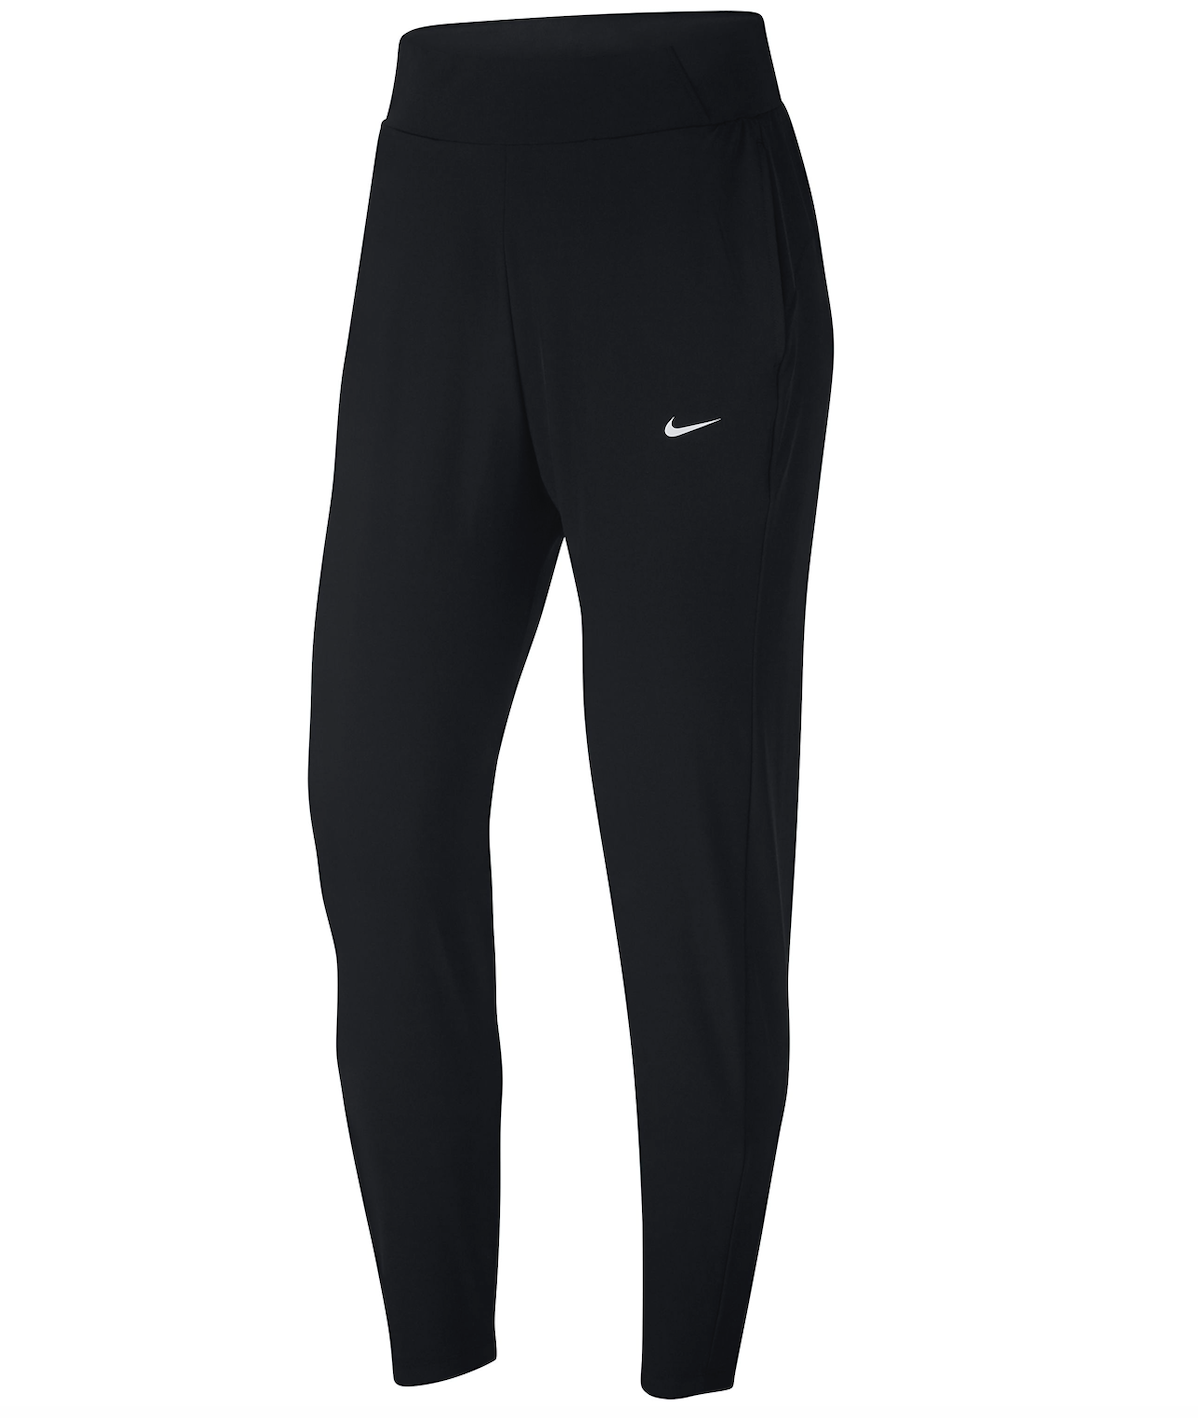 Bilde av Nike w bliss mr vctry pant CU4321-010